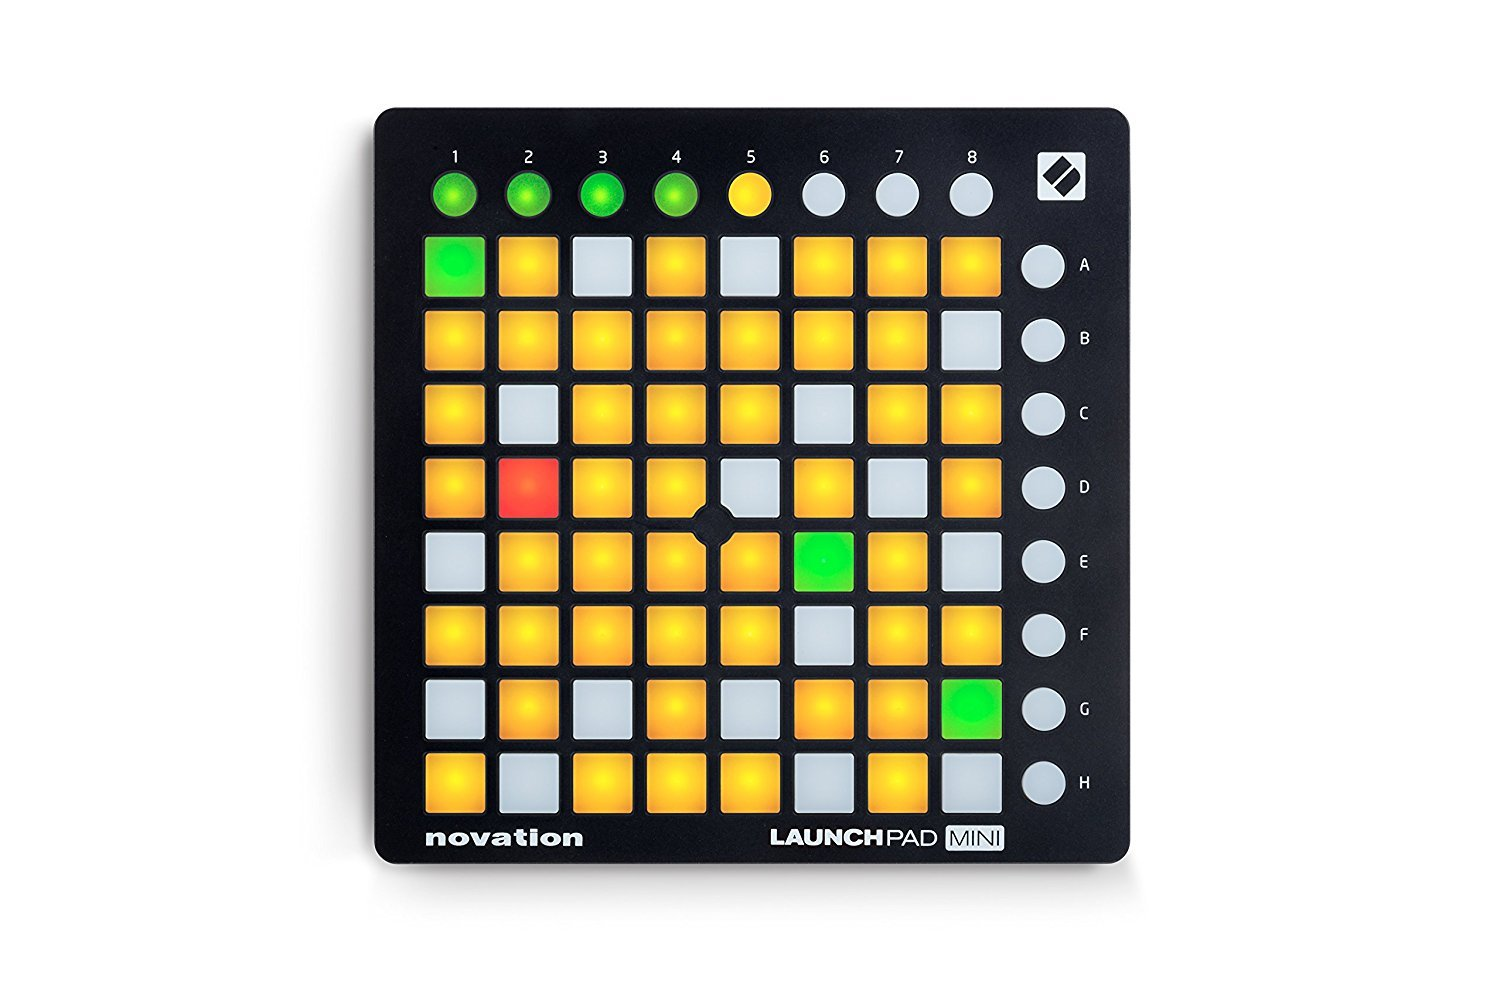 NOVATION LAUNCHPAD MINI MK2 COMPACT USB GRID CONTROLLER